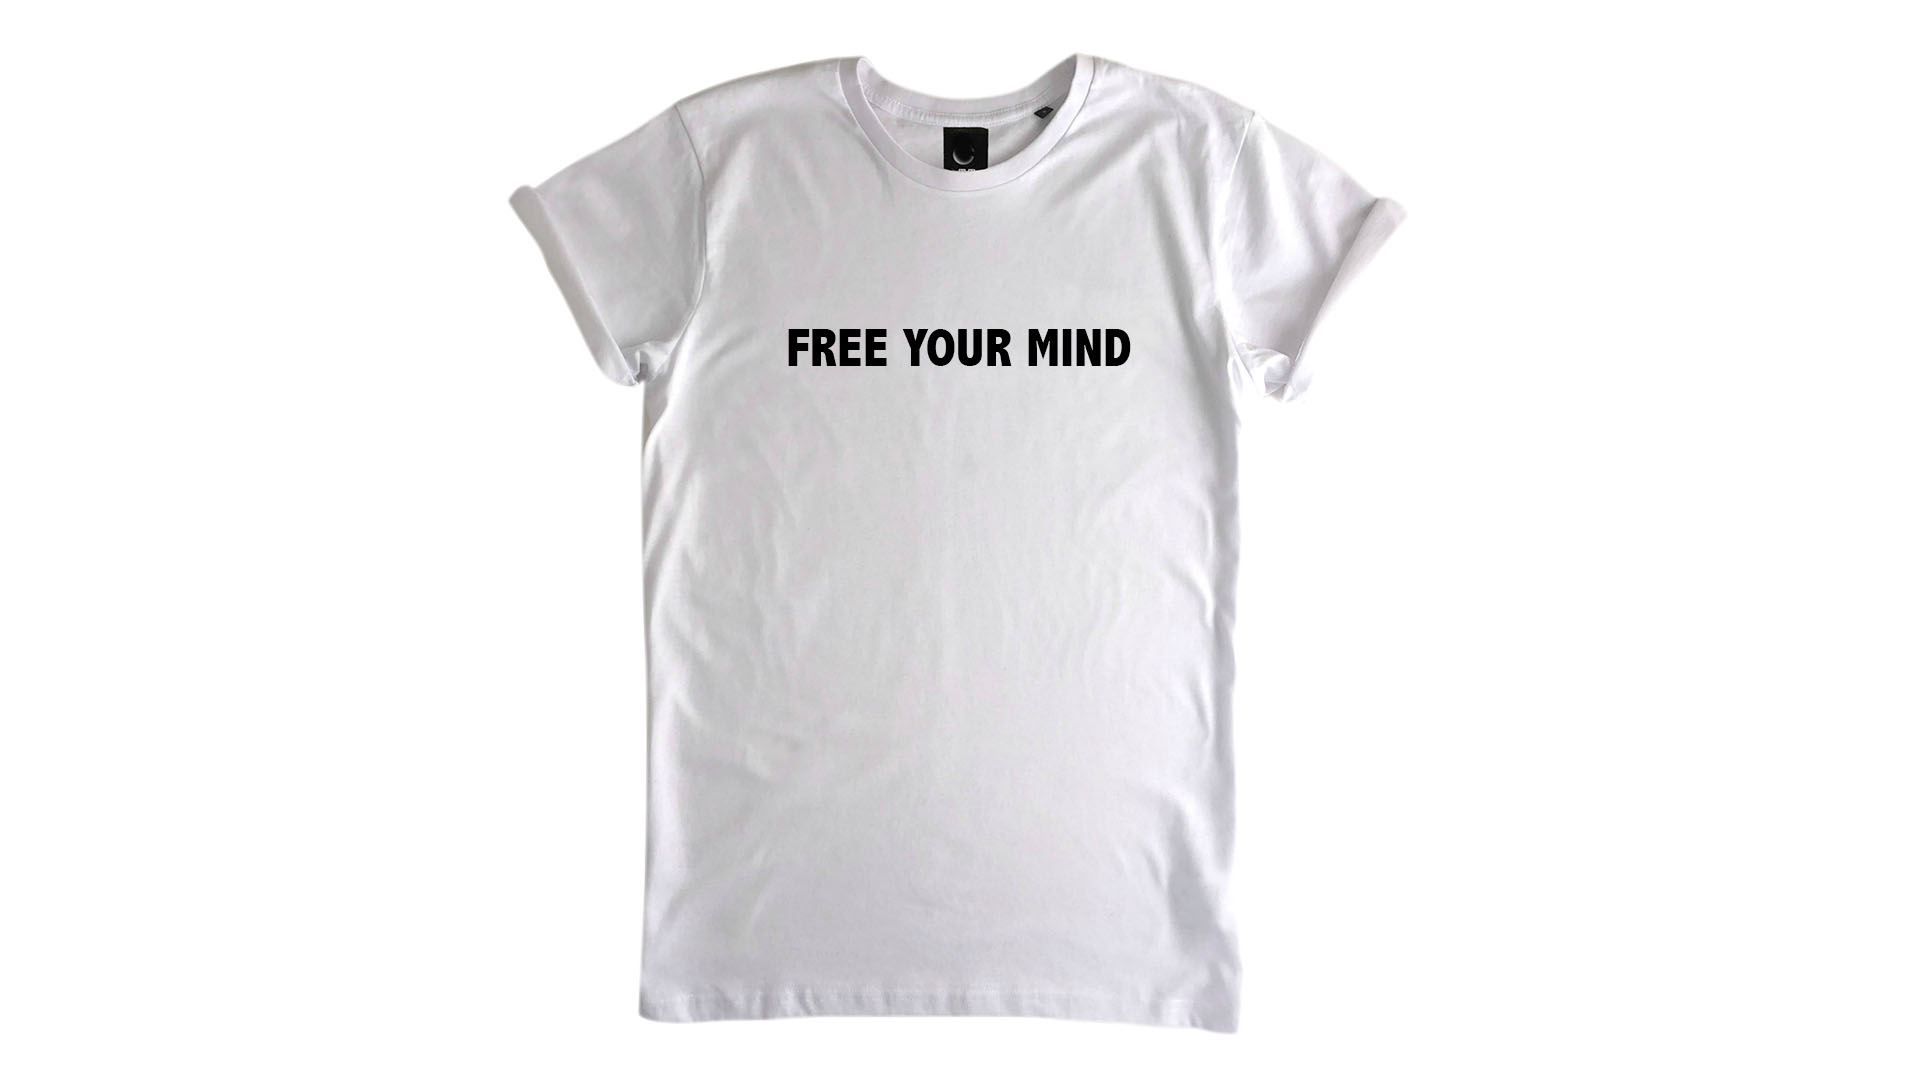 LiveLearn.Yoga Yoga T-Shirt Organic Cotton Free Your Mind White